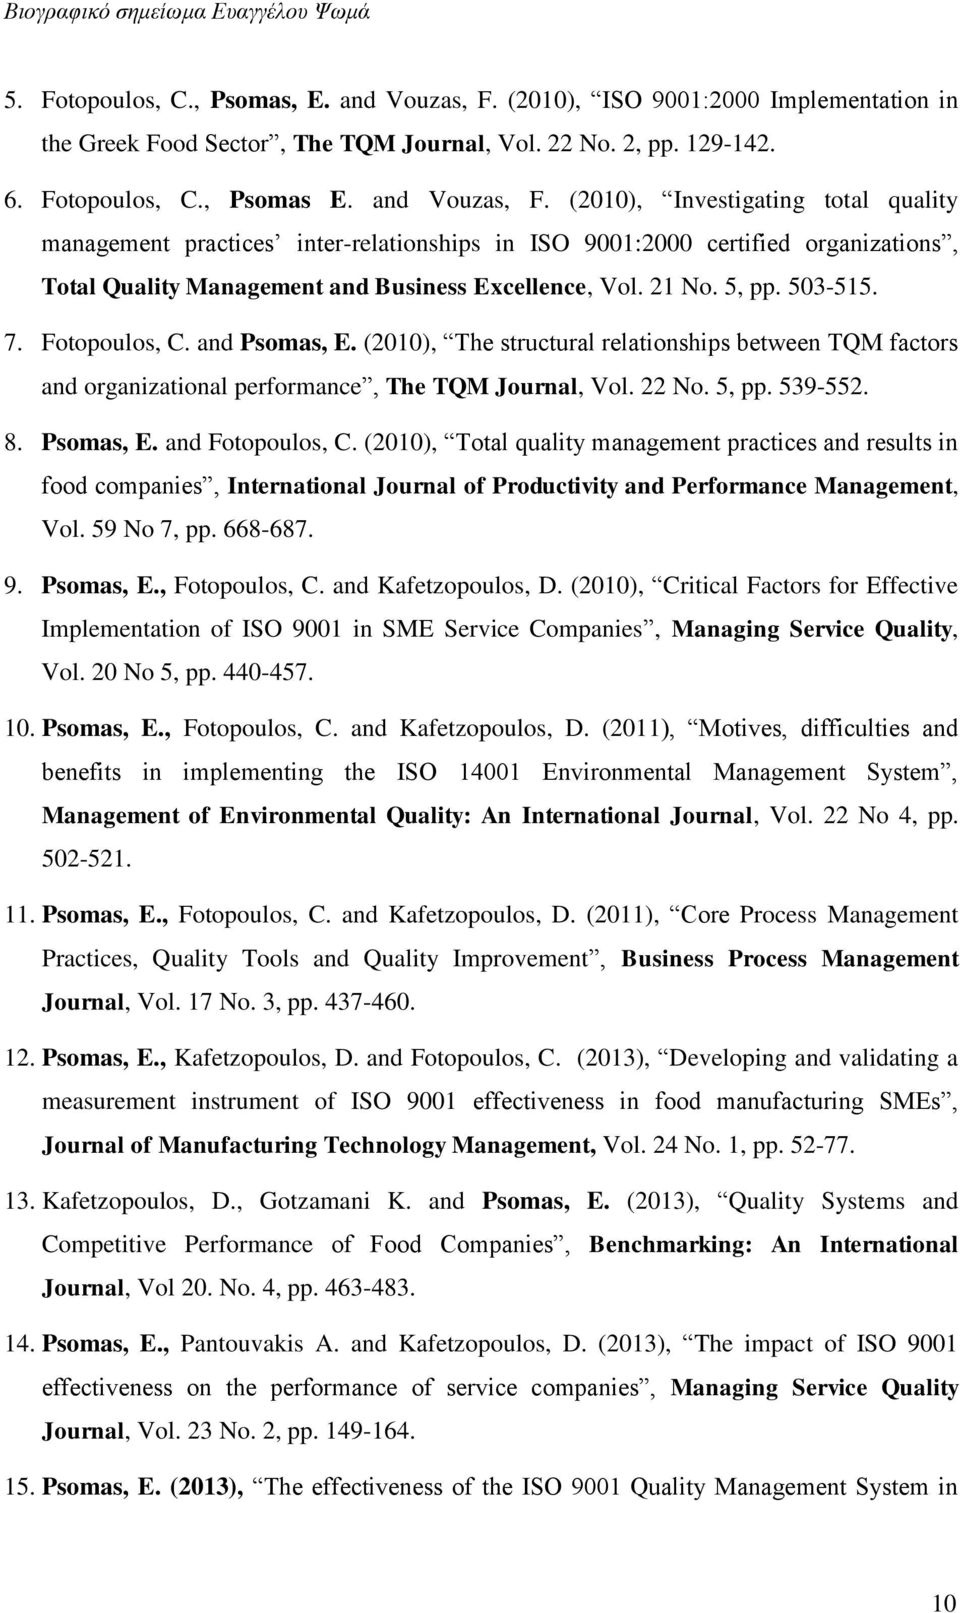 (2010), Investigating total quality management practices inter-relationships in ISO 9001:2000 certified organizations, Total Quality Management and Business Excellence, Vol. 21 No. 5, pp. 503-515. 7.